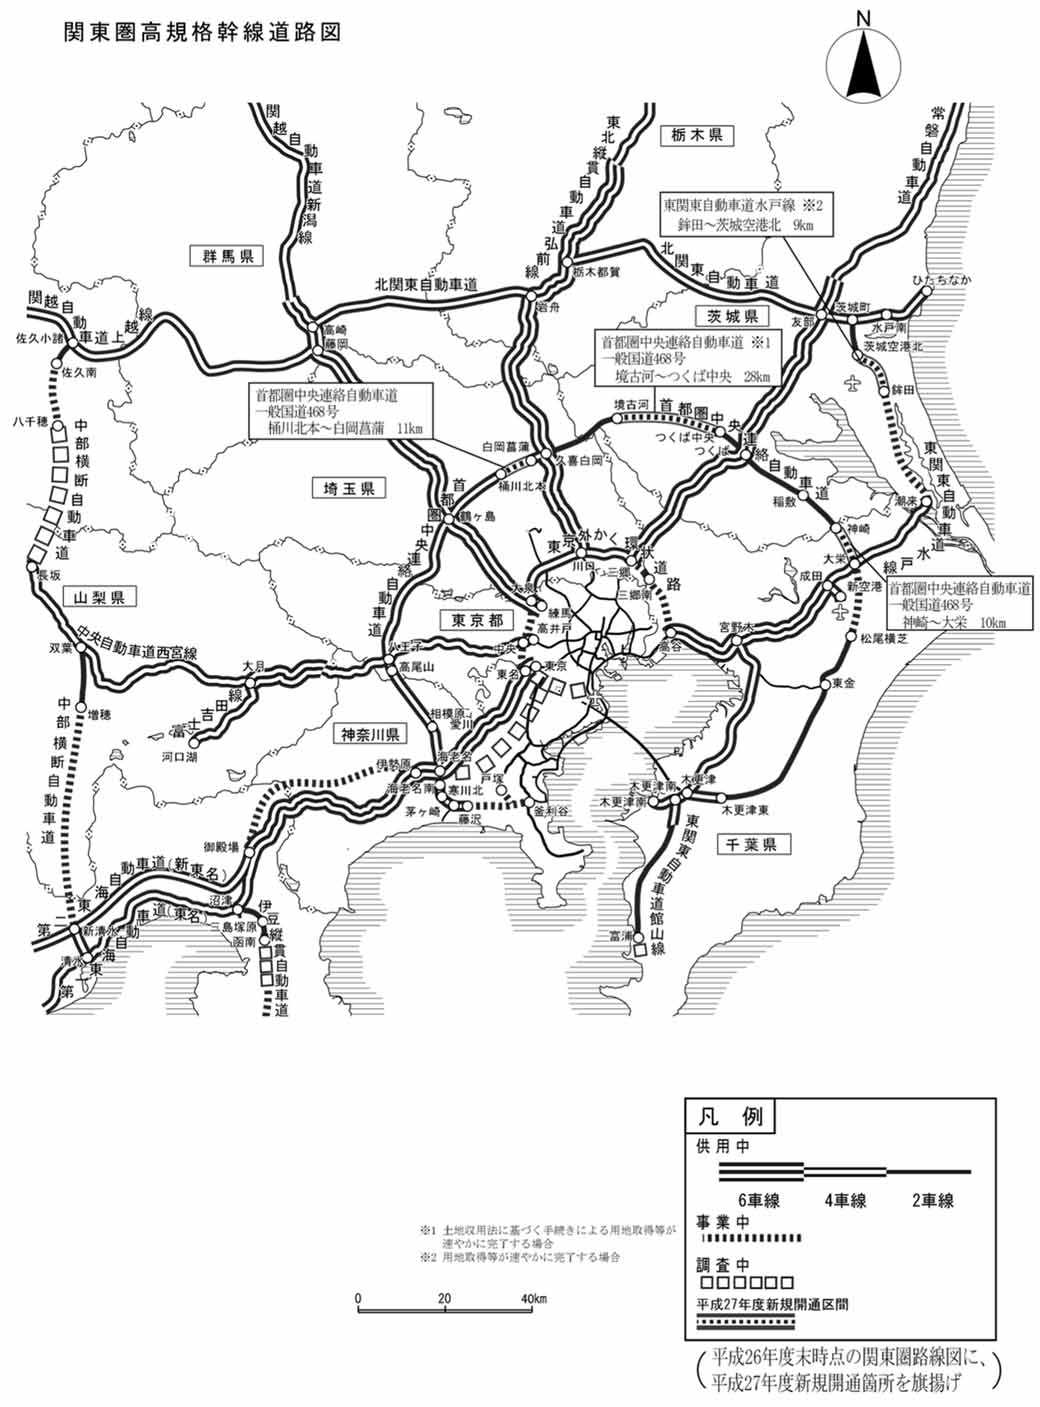 2015-version-of-the-tokyo-metropolitan-area-white-paper20150617-1-min